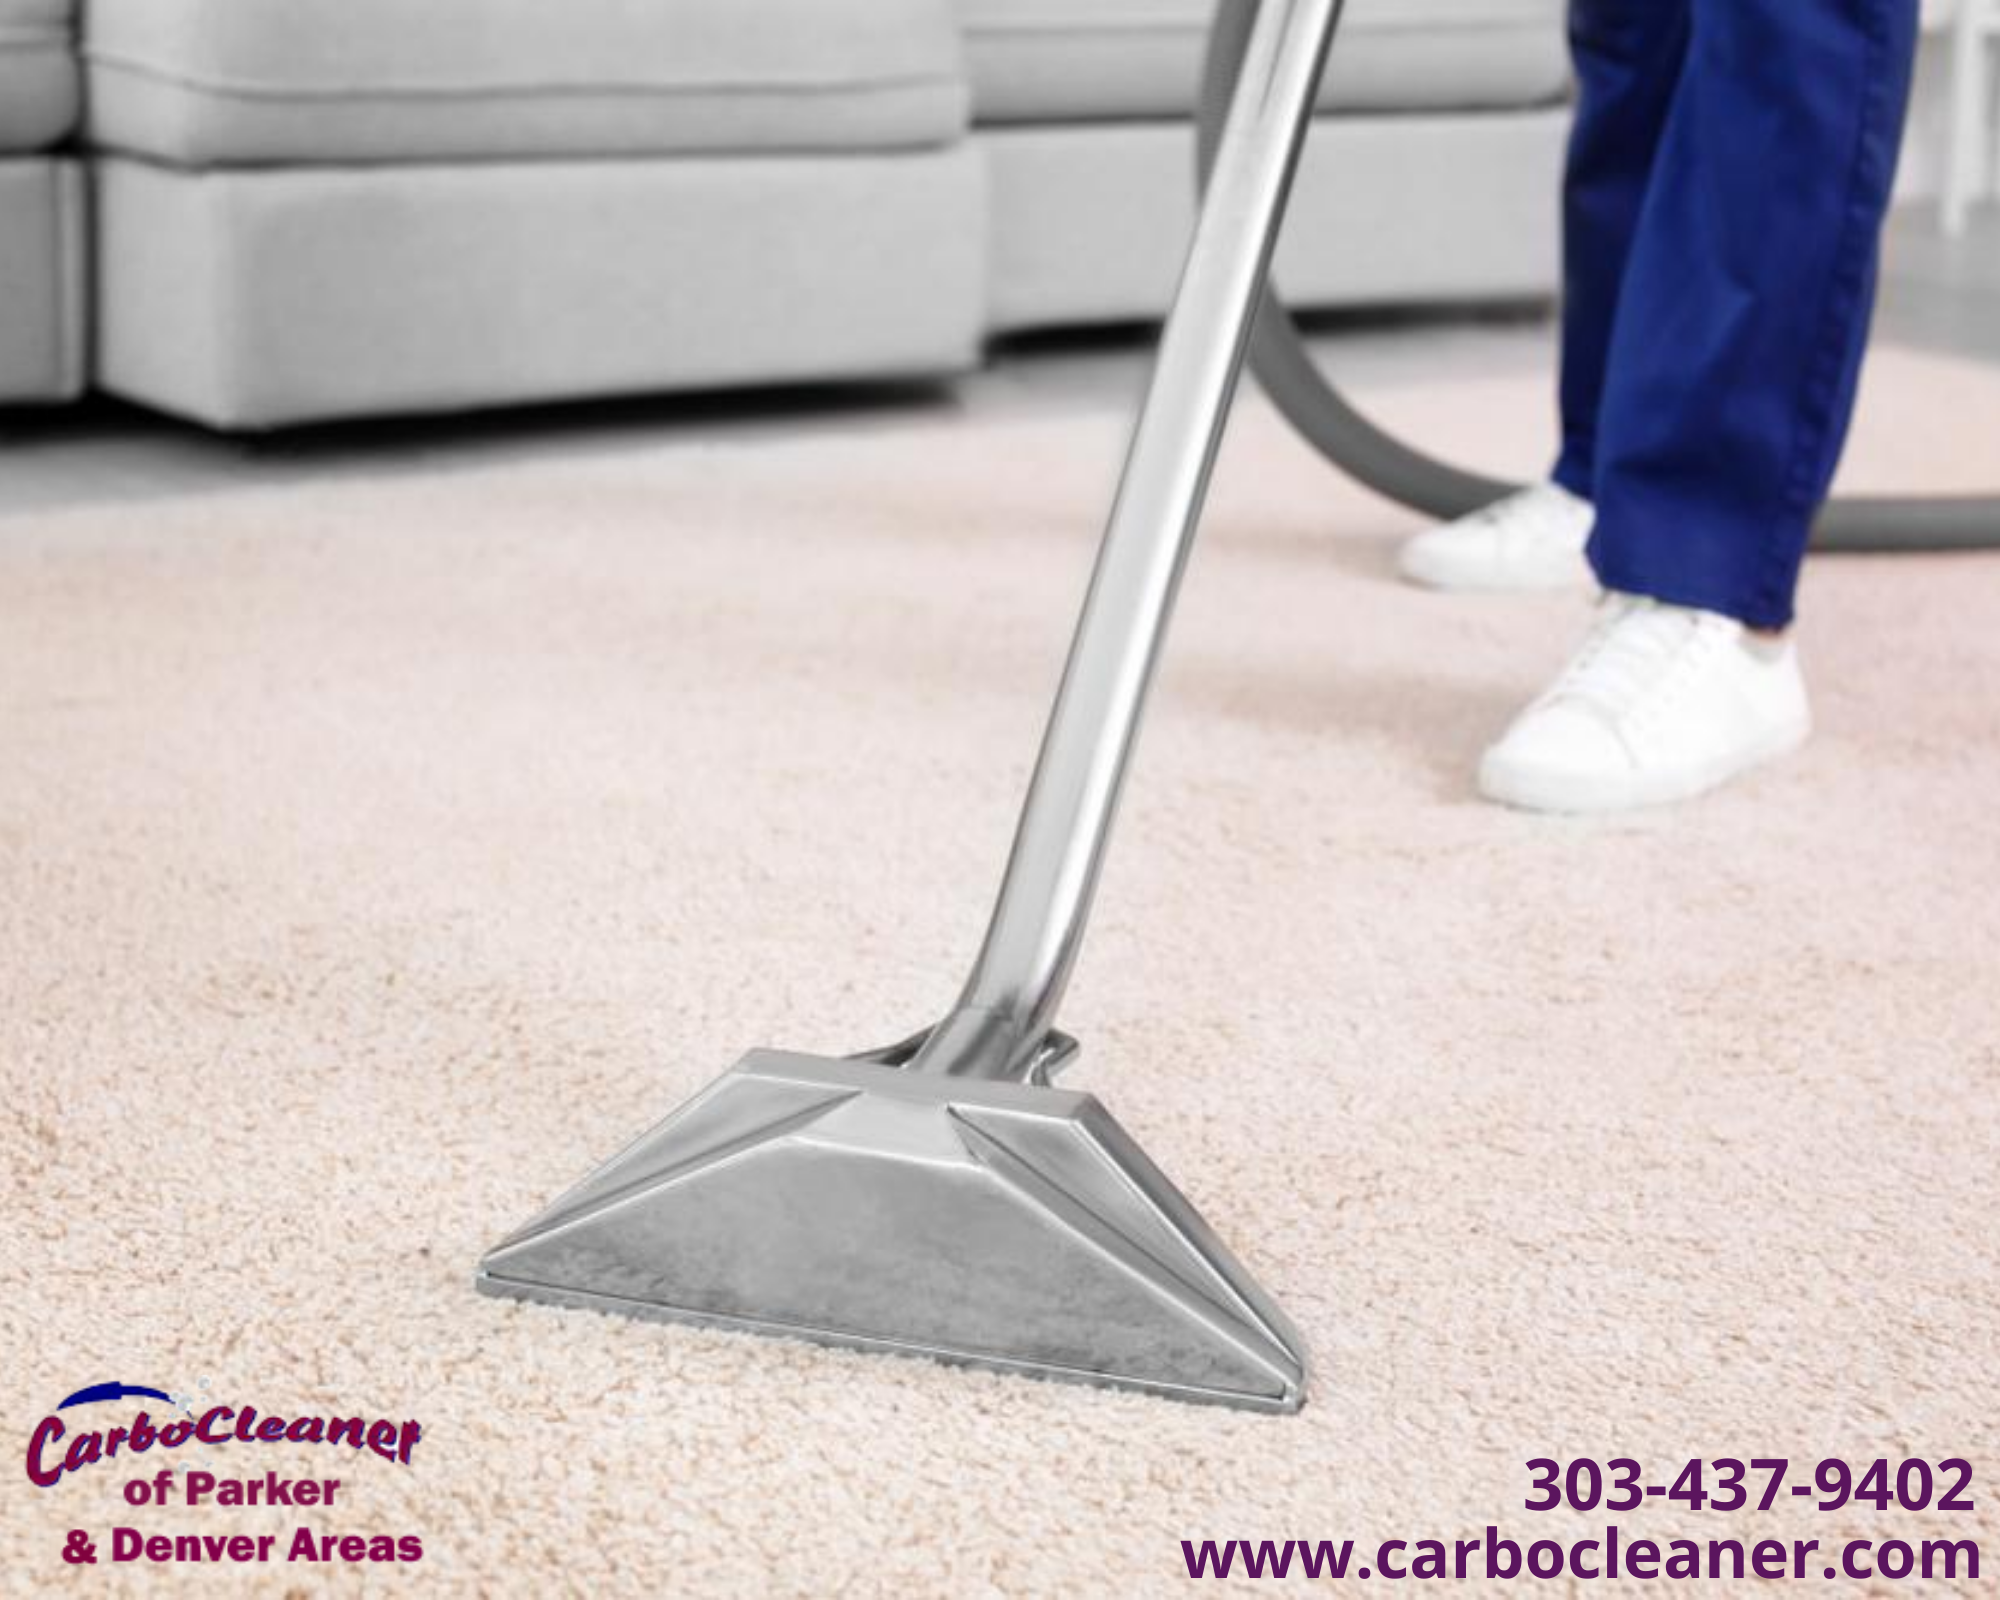 Chemical Free Carpet Cleaning Services In 2020 How To Clean Carpet Dry Carpet Cleaning Carpet Cleaning Service